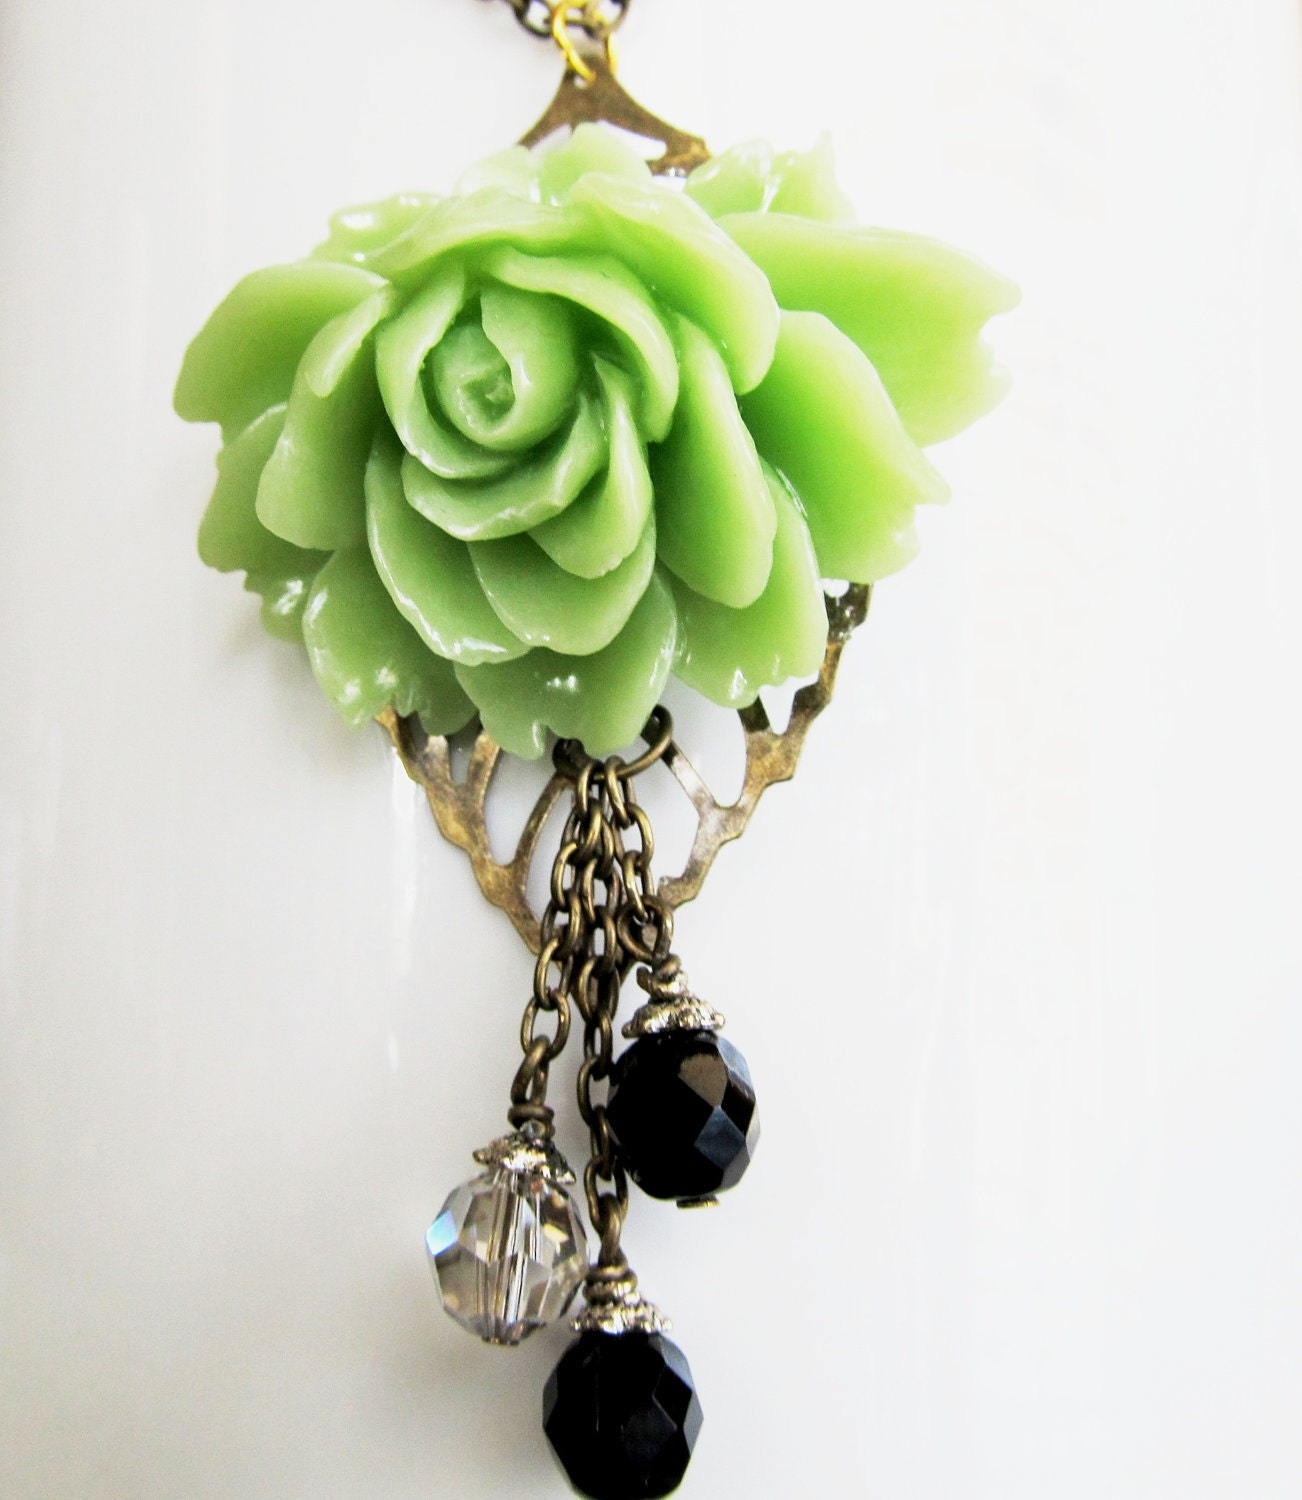 Romantic Flower Rose Necklace